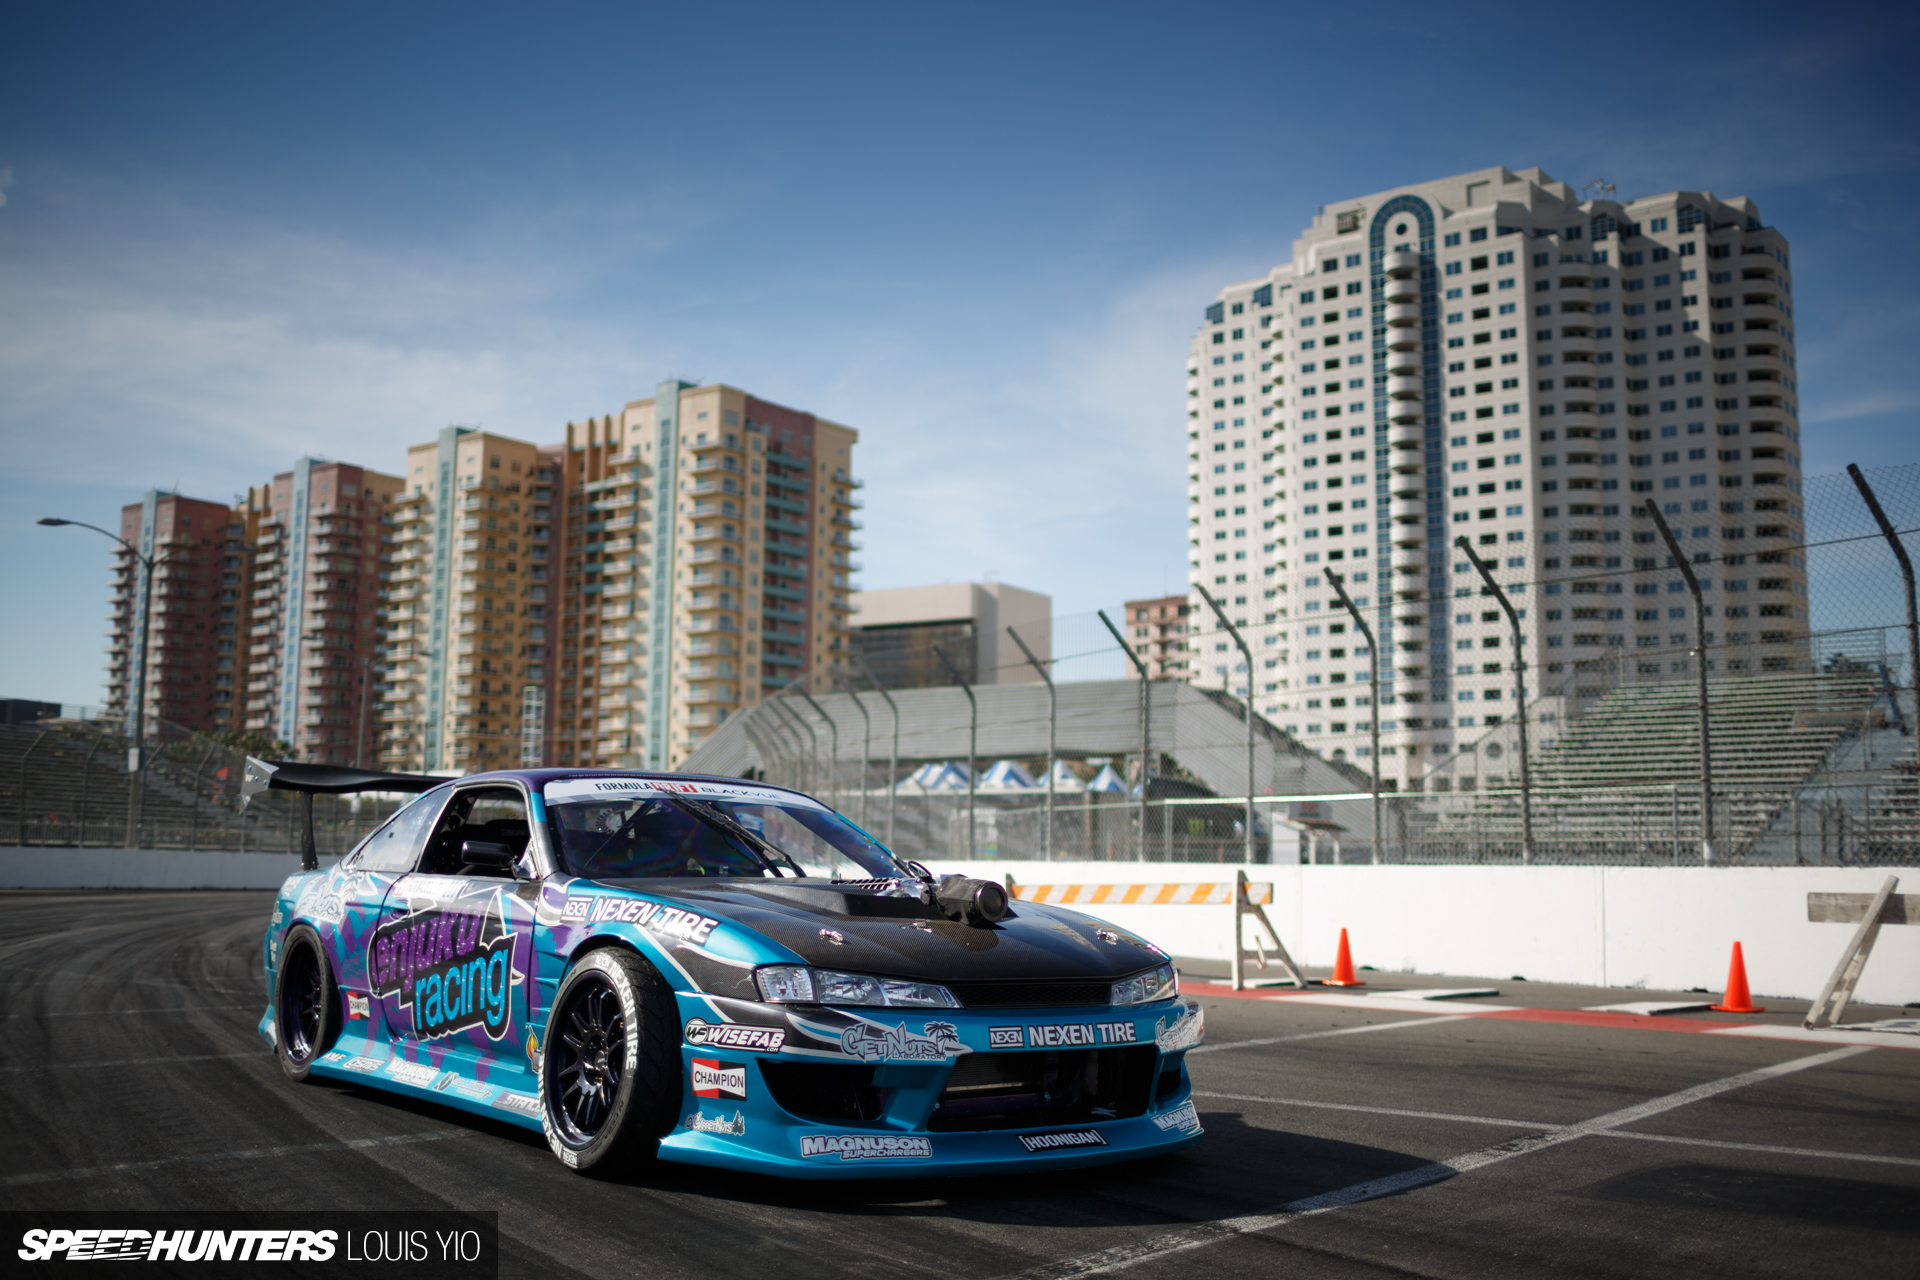 An s14 the american way louis_yio_2016_speedhunters_alec_hohnadell_drift_car_02 louis_yio_2016_speedhunters_alec_hohnadell_drift_car_05